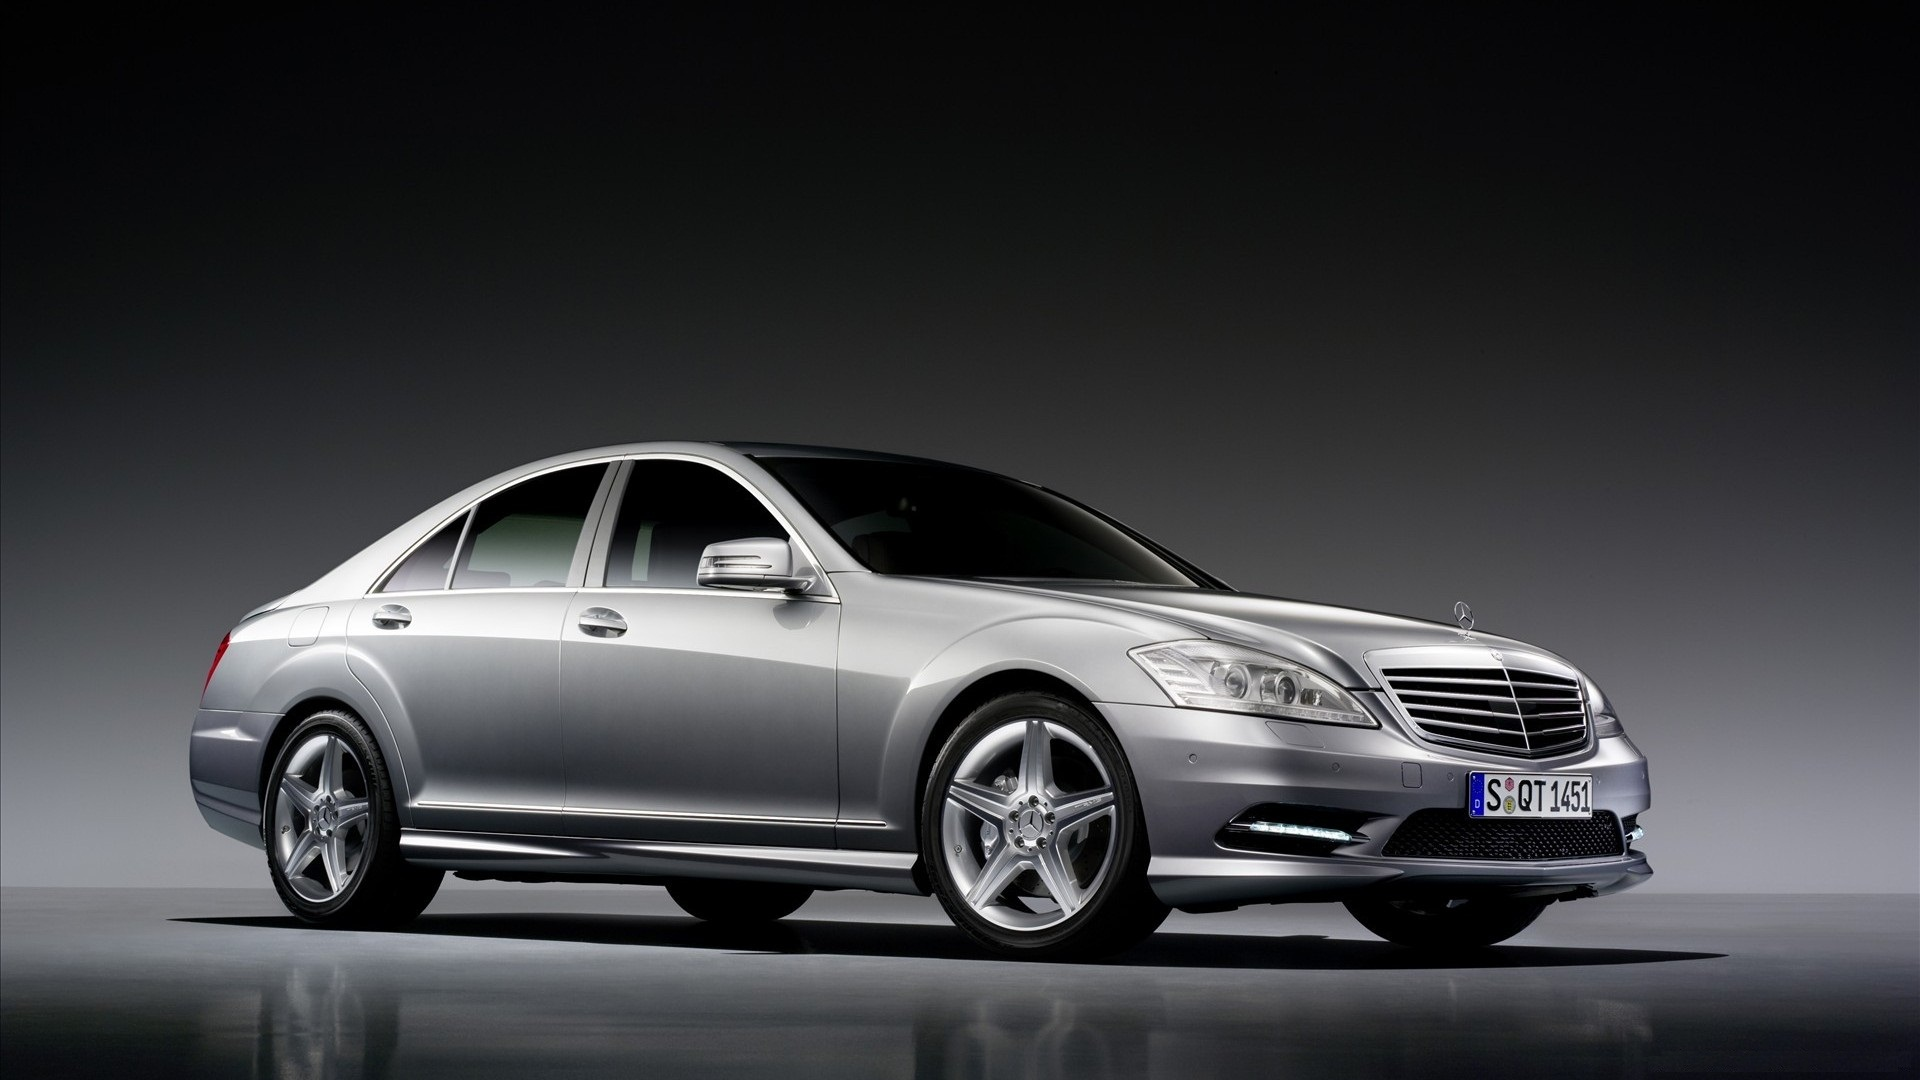 2012 Mercedes Benz-HD Wallpaper - My Site